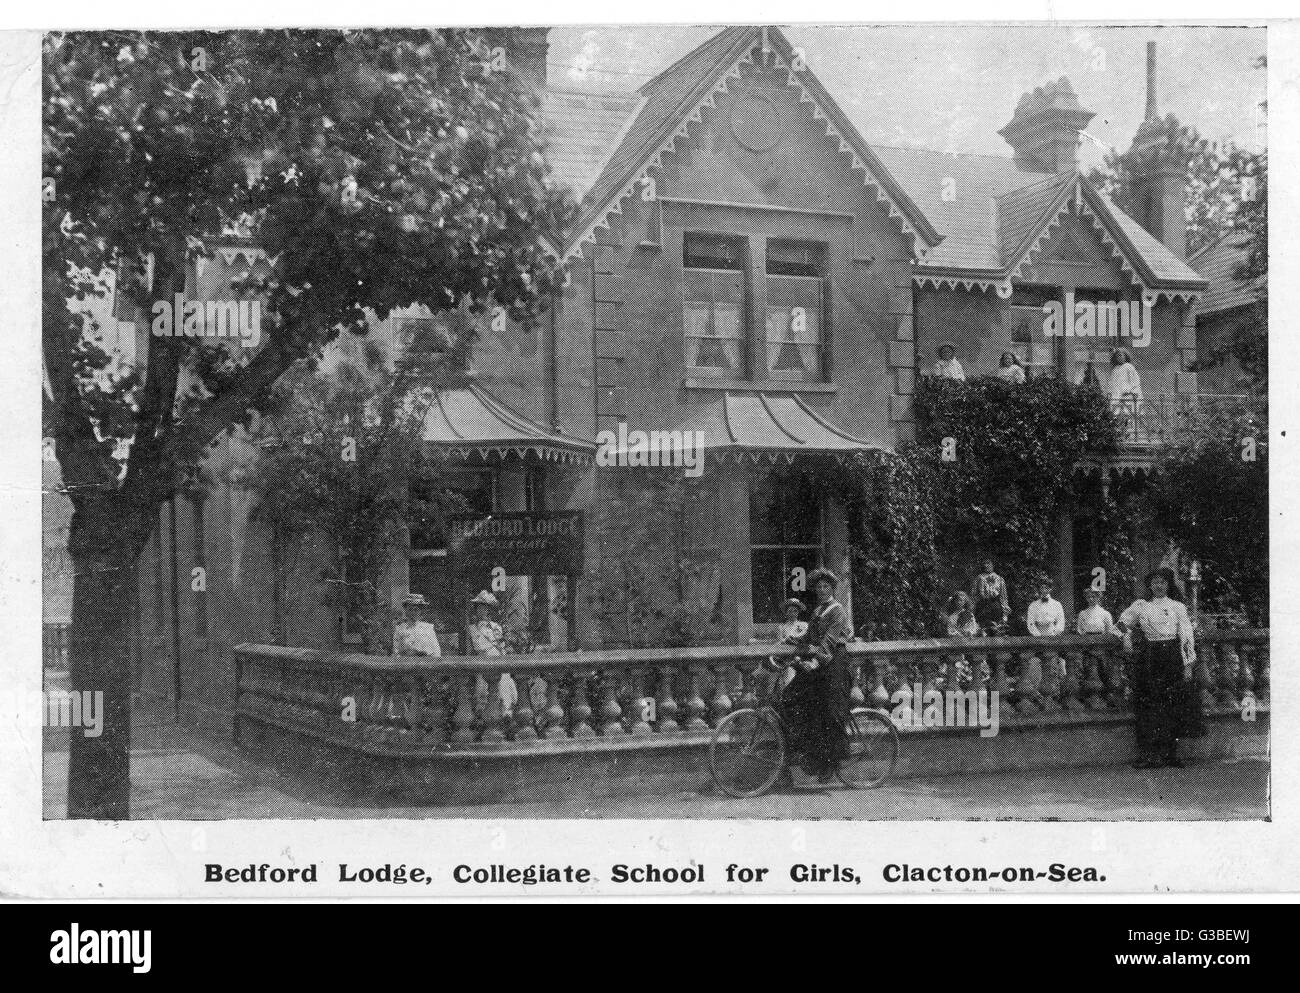 Bedford Lodge Collegiate  School for Girls, Clacton- on-Sea, Essex.       Date: 1906 - Stock Image